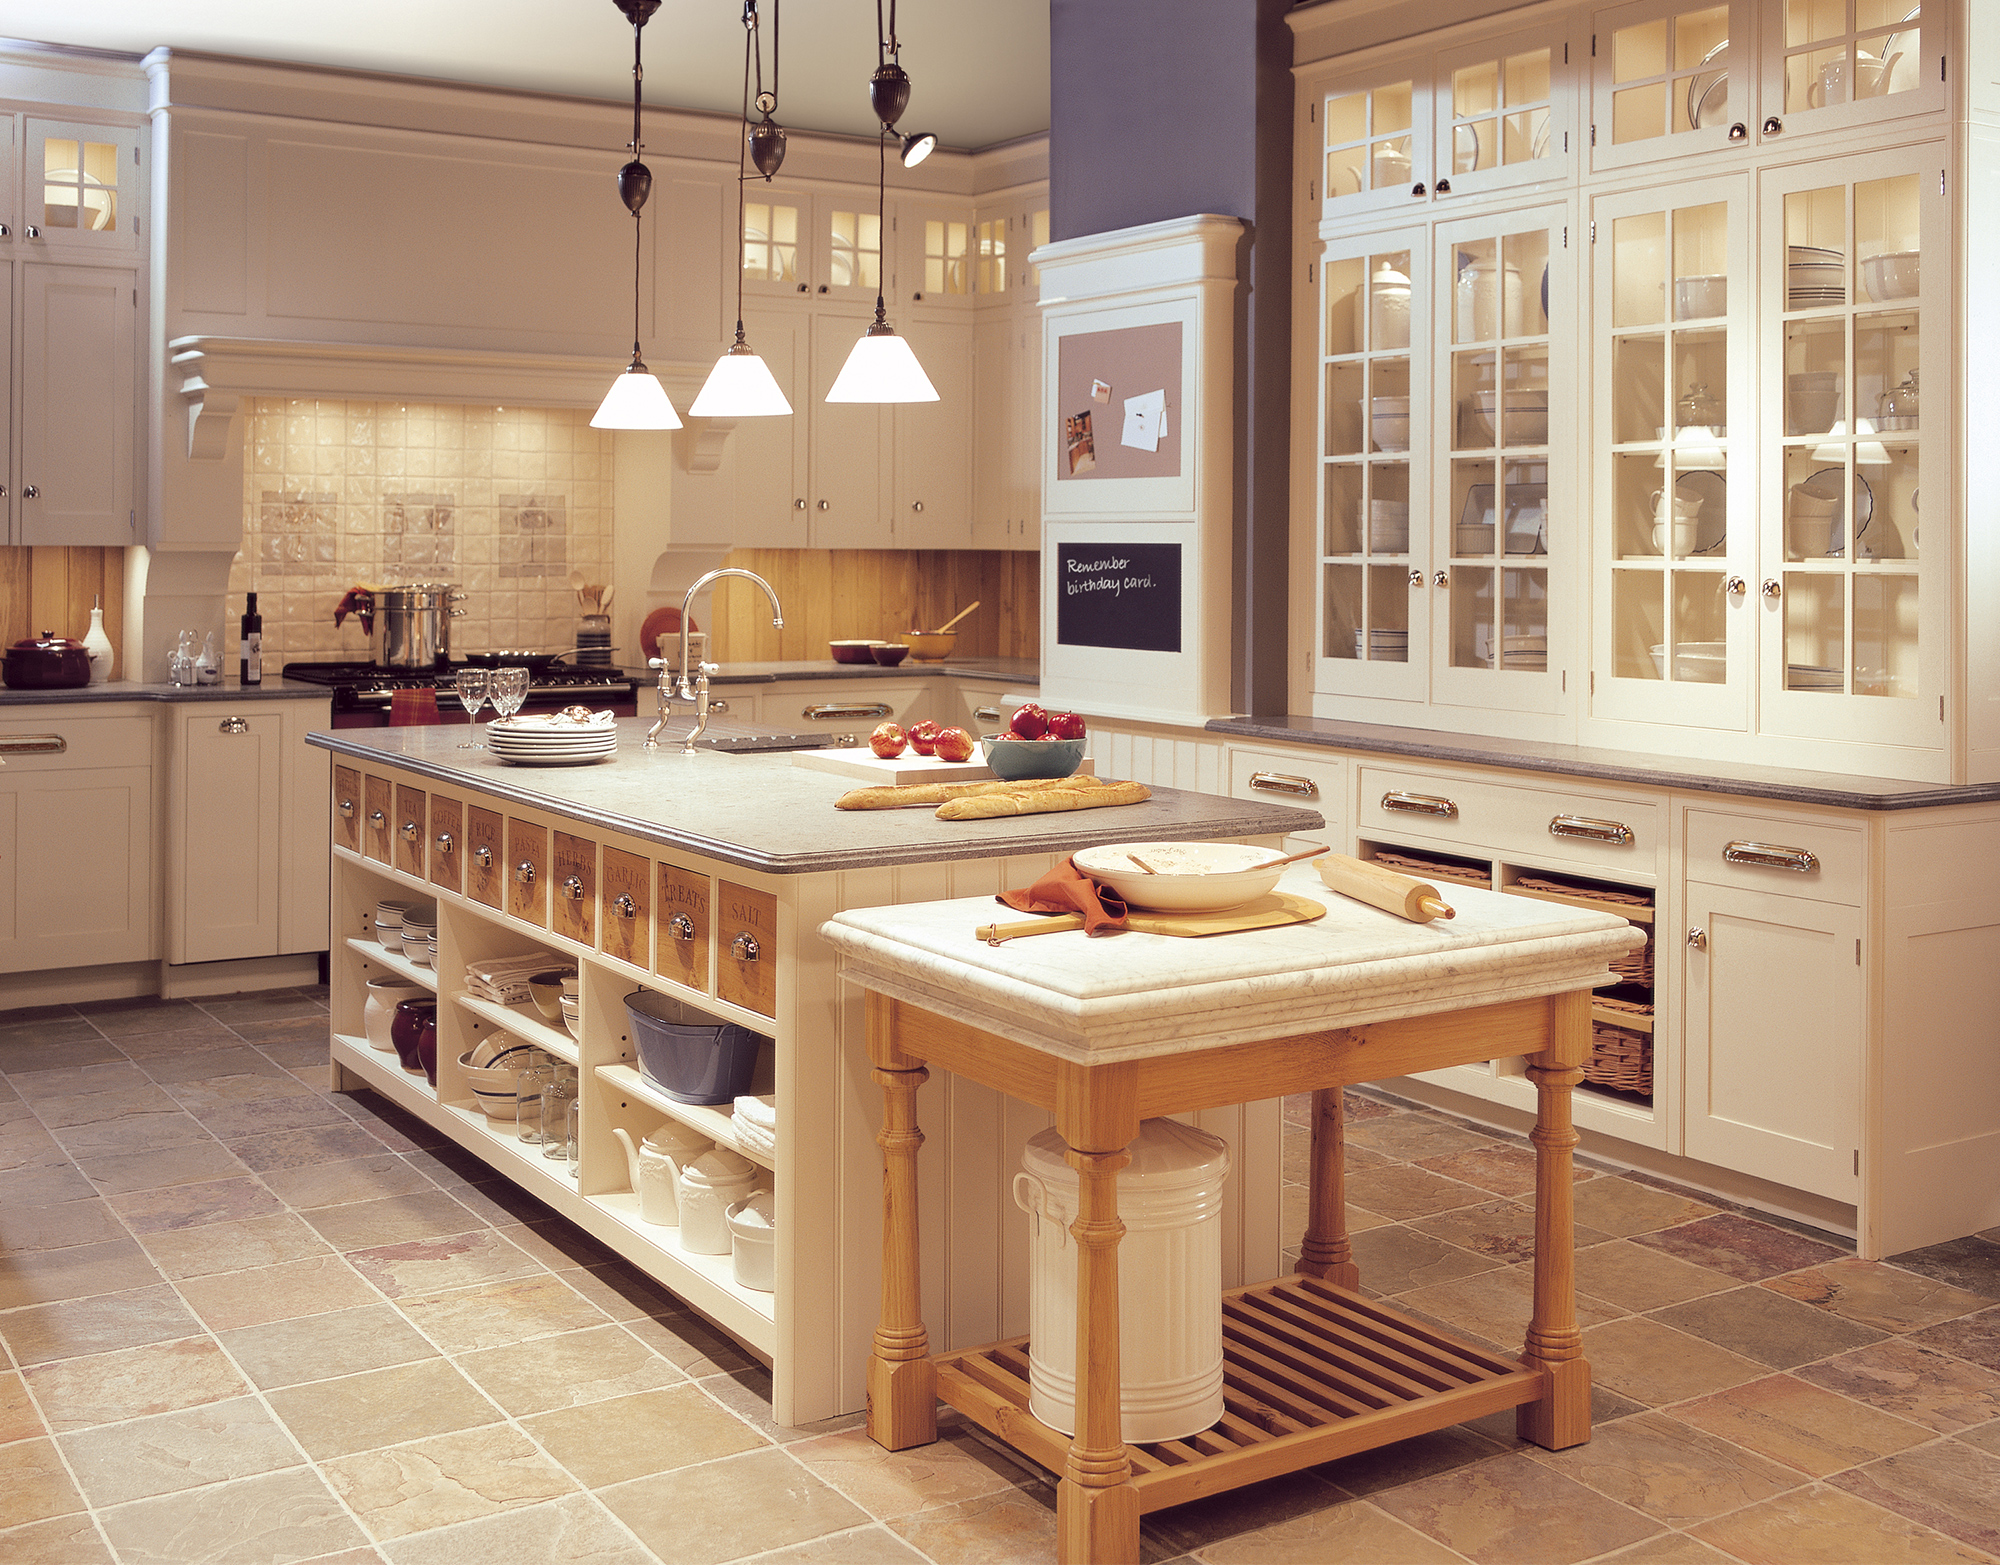 Luxury bespoke kitchens new england collection mark wilkinson Baker group kitchen design